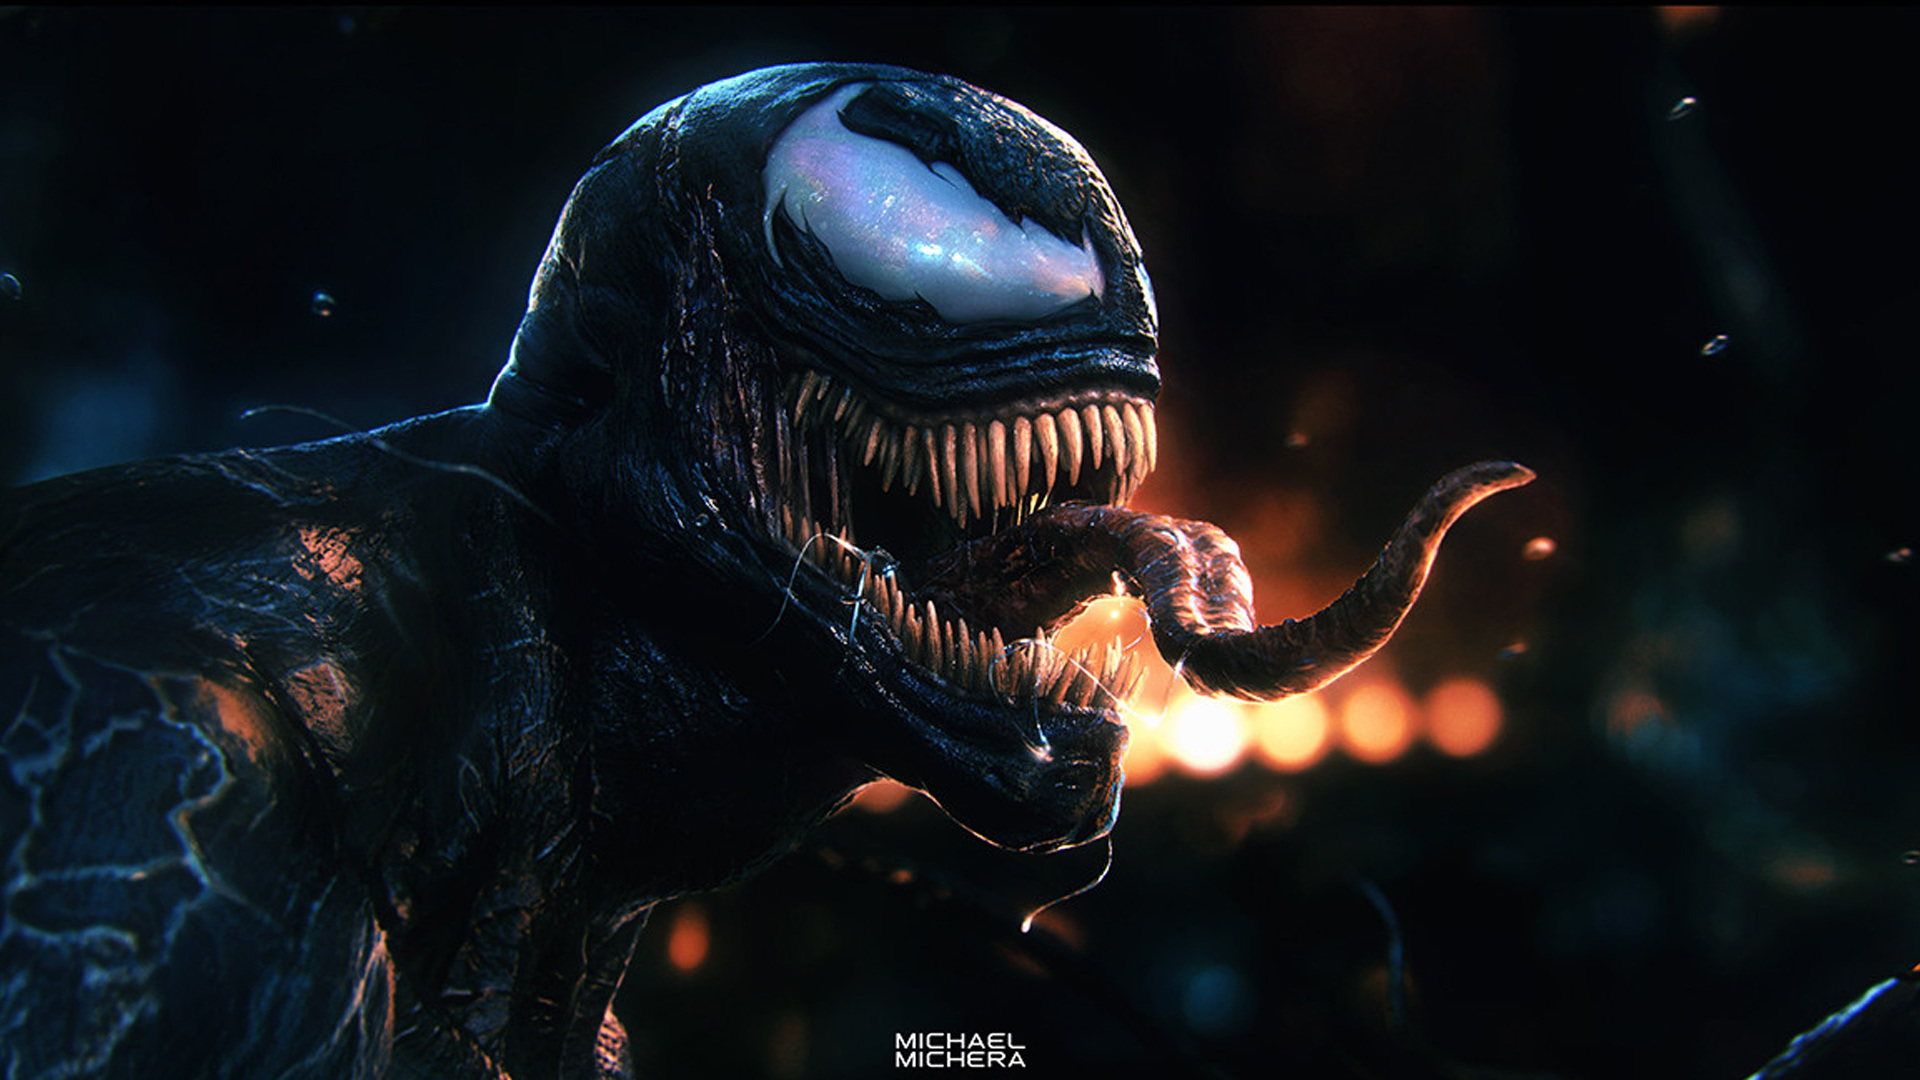 1920x1080 Venom Fan Digital Art Laptop Full HD 1080P HD 4k ...